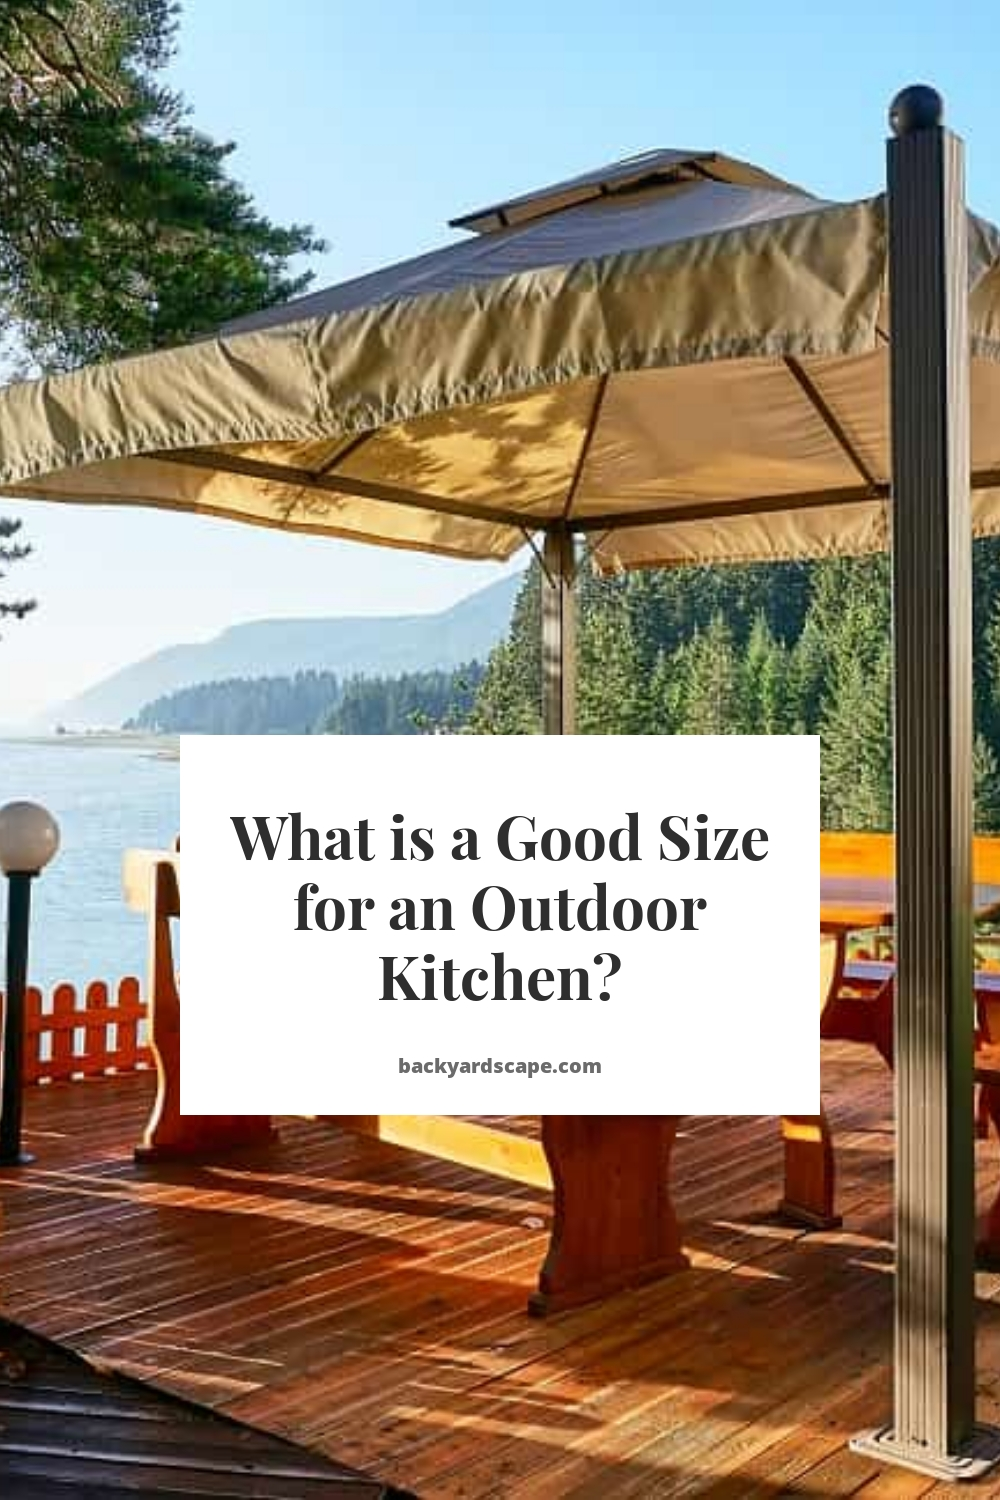 What is a Good Size for an Outdoor Kitchen?